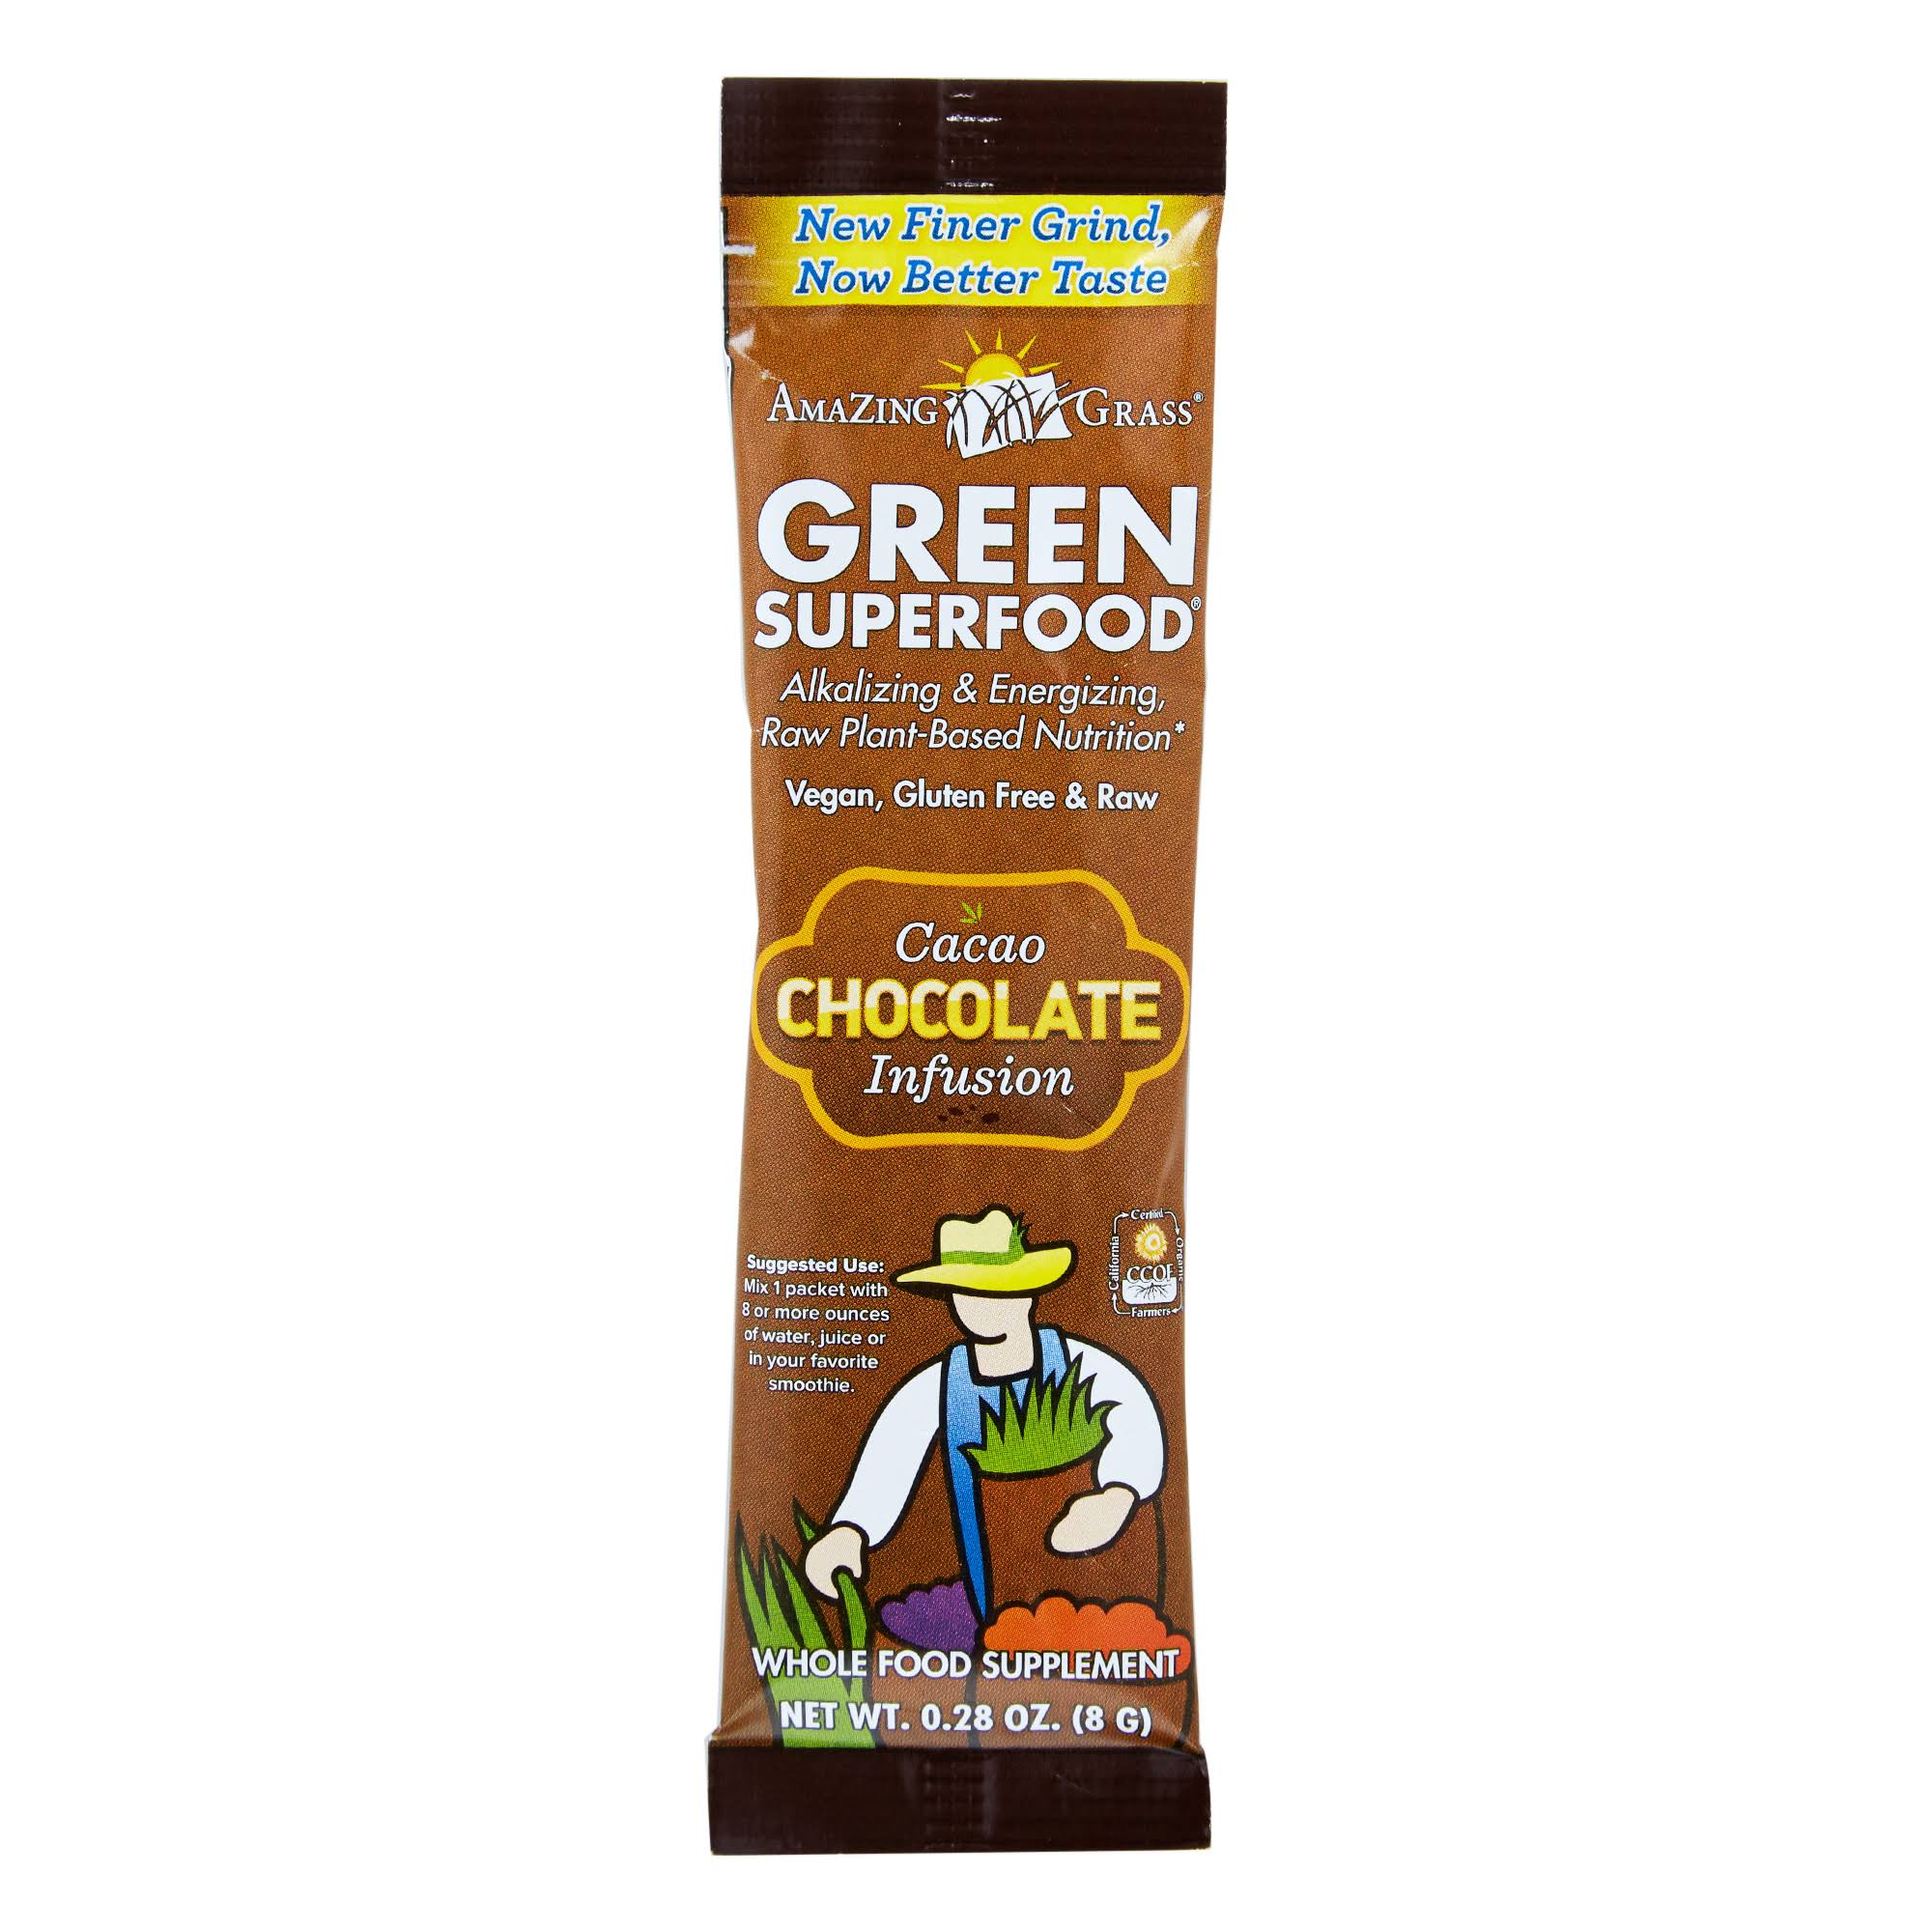 Amazing Grass Green Superfood Chocolate Drink Powder 8g x 15